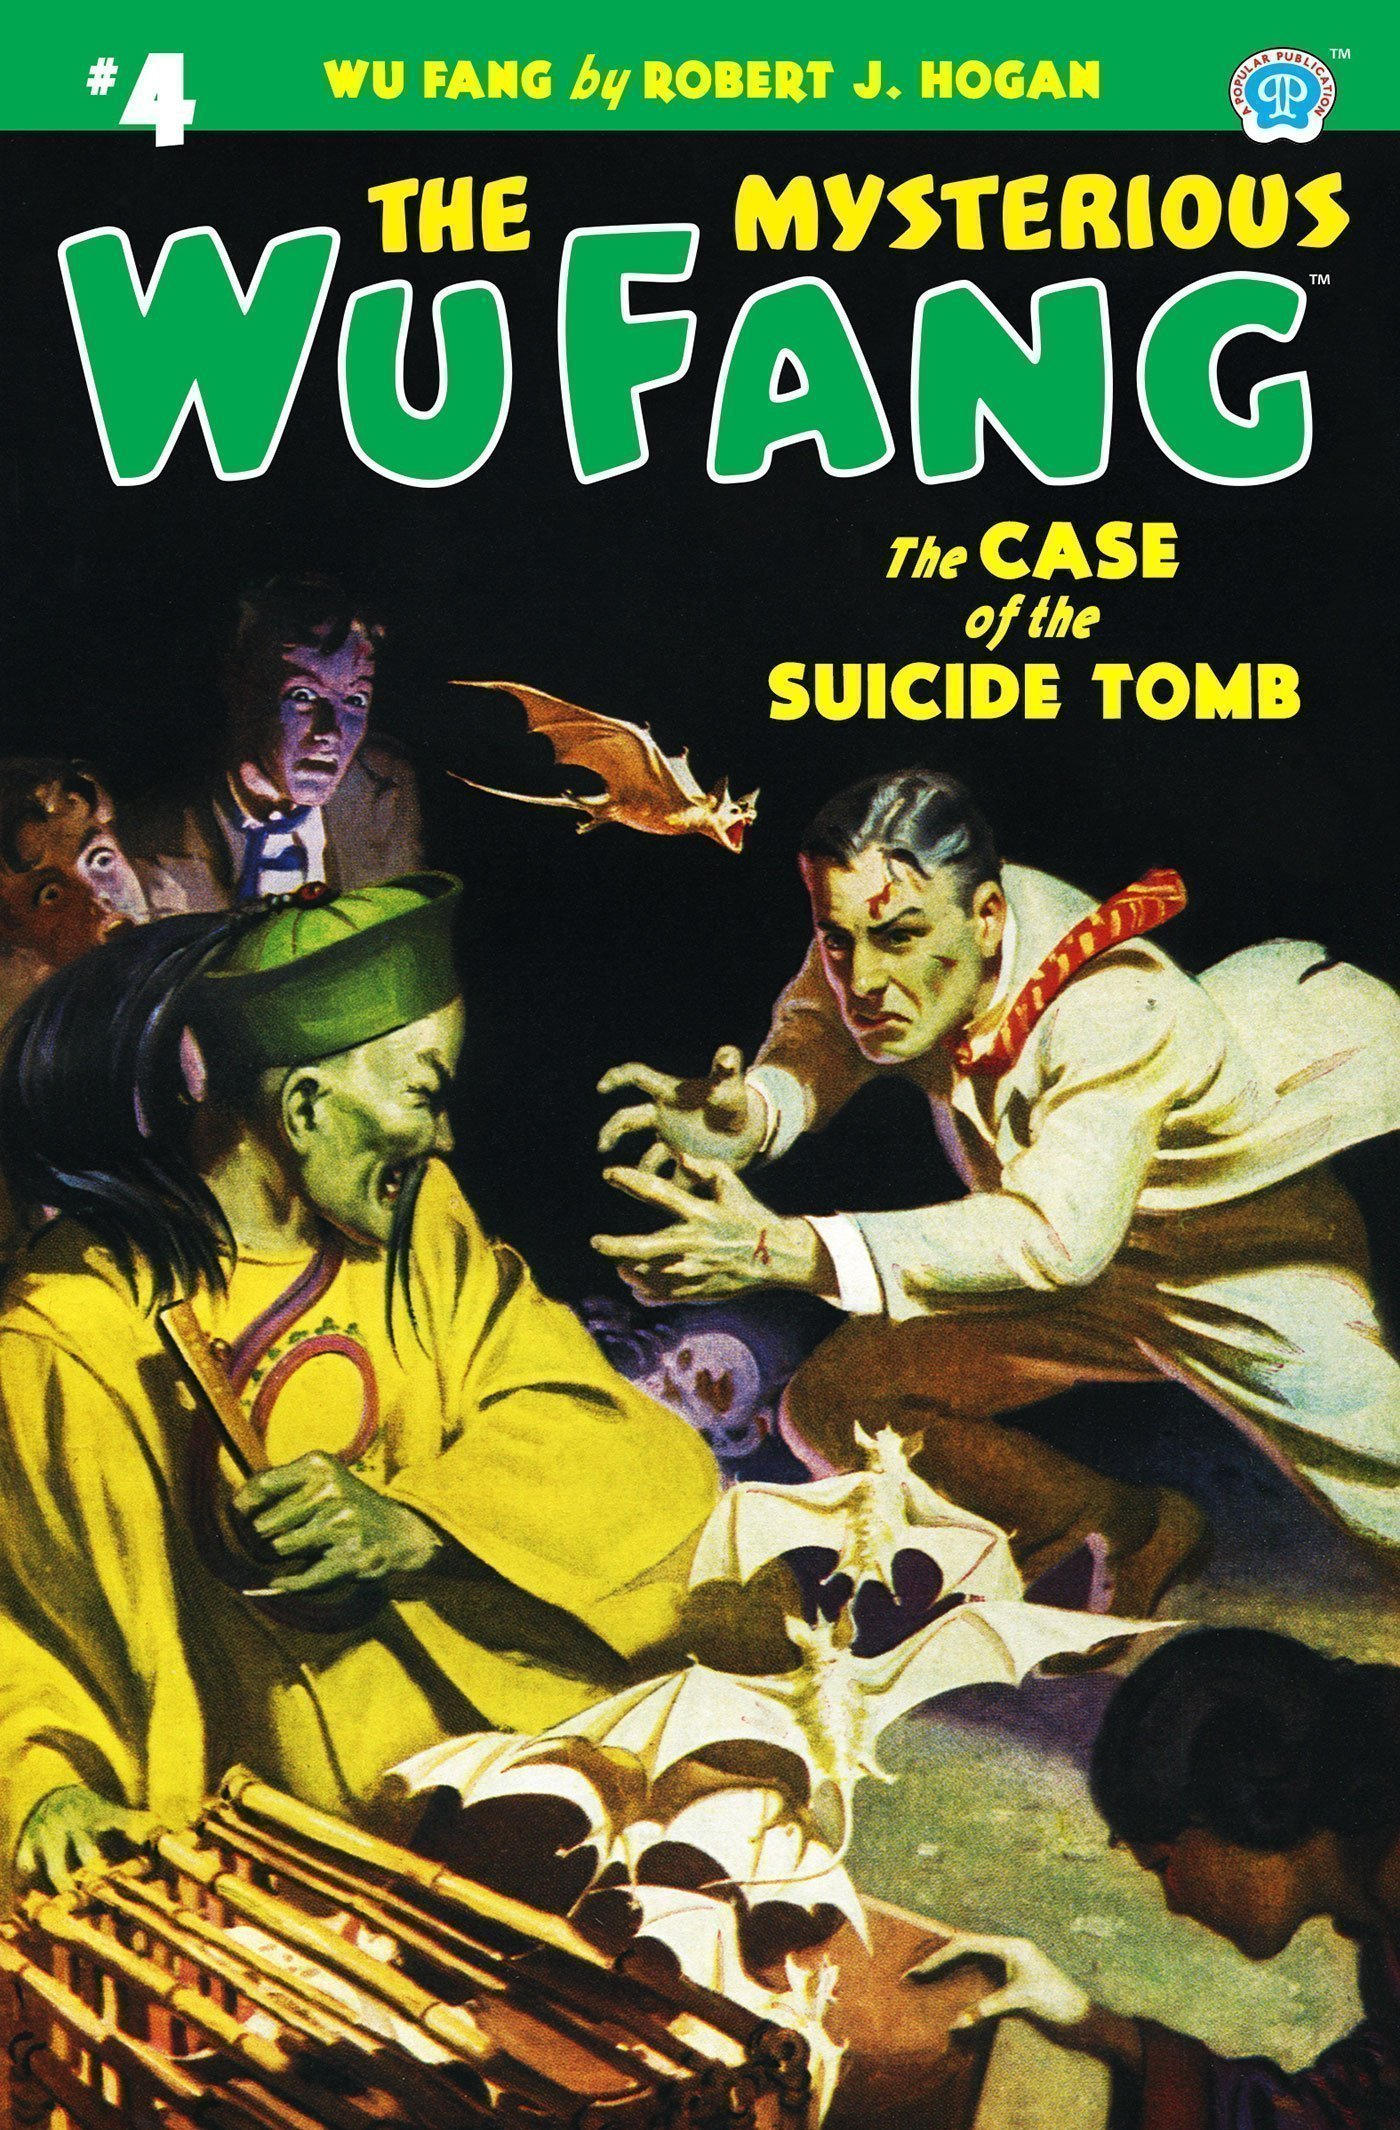 The Mysterious Wu Fang #4: The Case of the Suicide Tomb